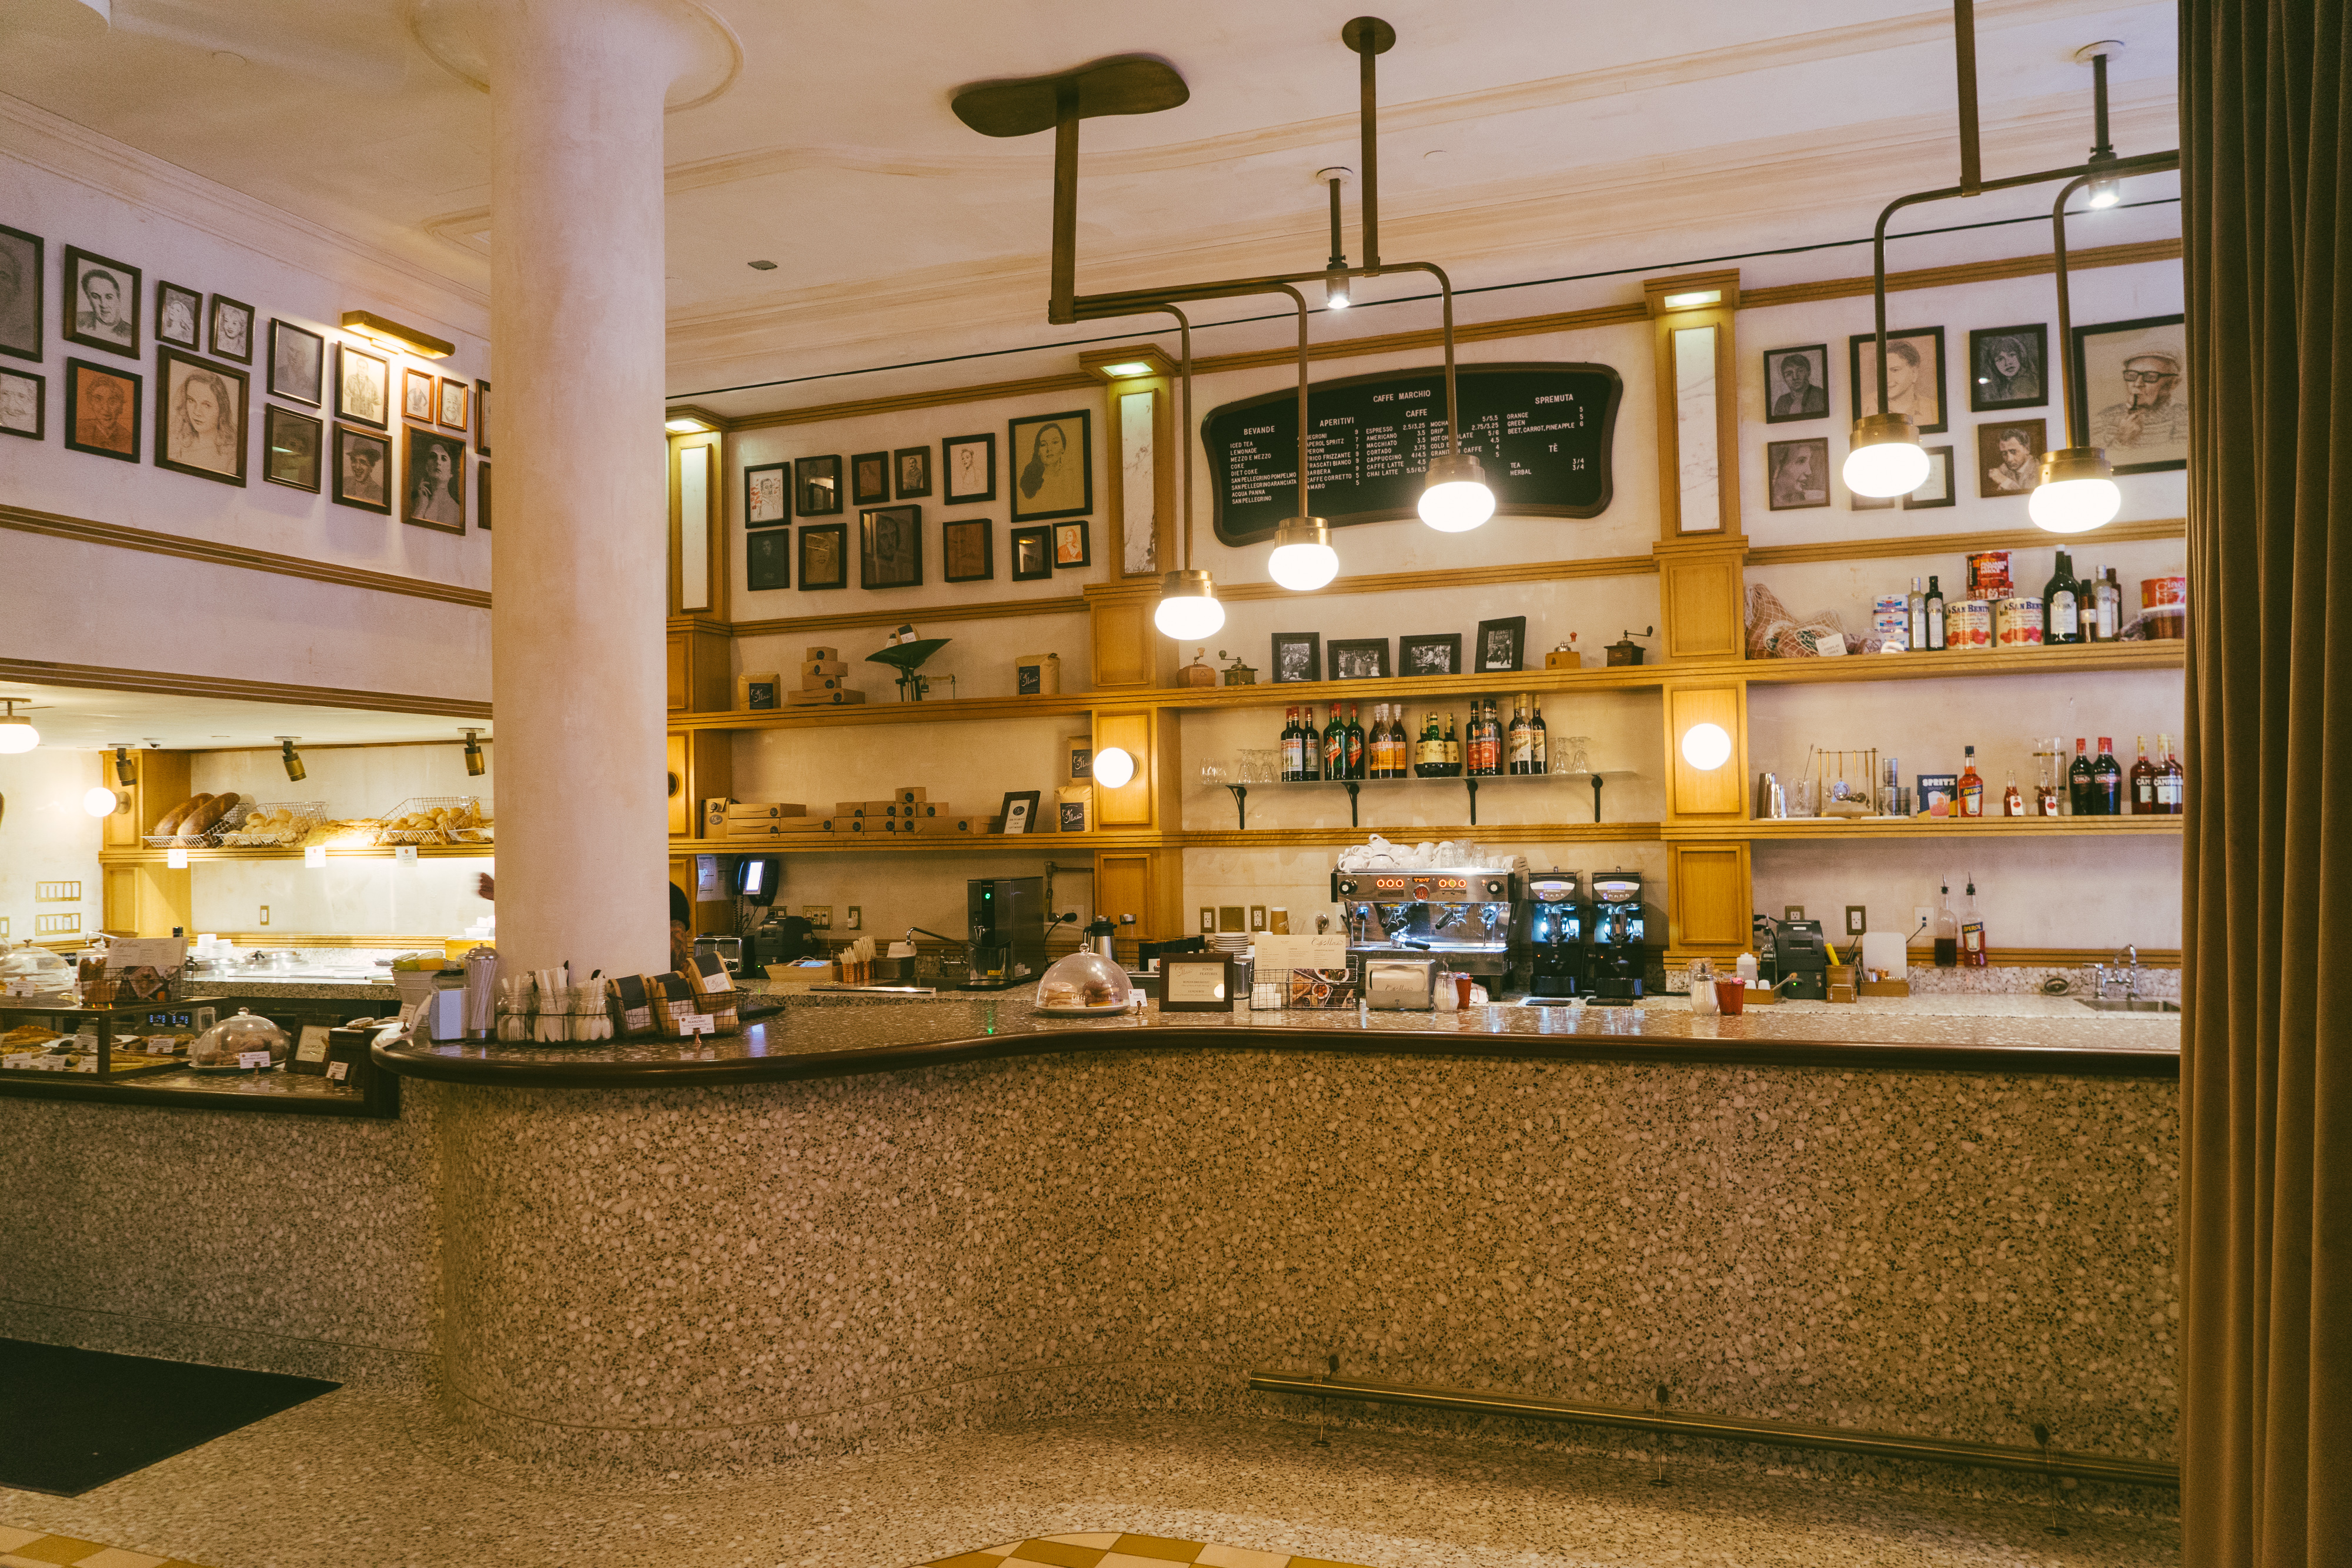 The Best Restaurants In Nomad New York The Infatuation